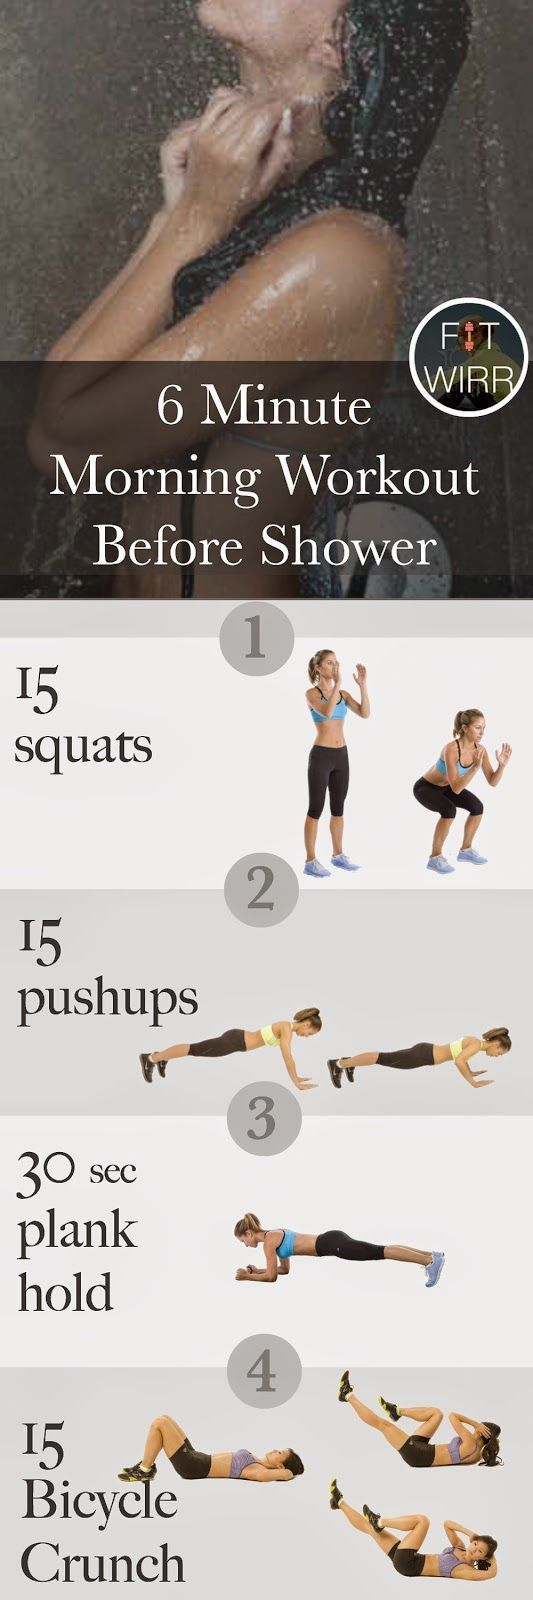 This workout is so quick you can still have a lie-in in the morning #exercises #workouts #fitness http://www.cosmopolitan.co.uk/body/a34461/fitness-inspiration-graphics/